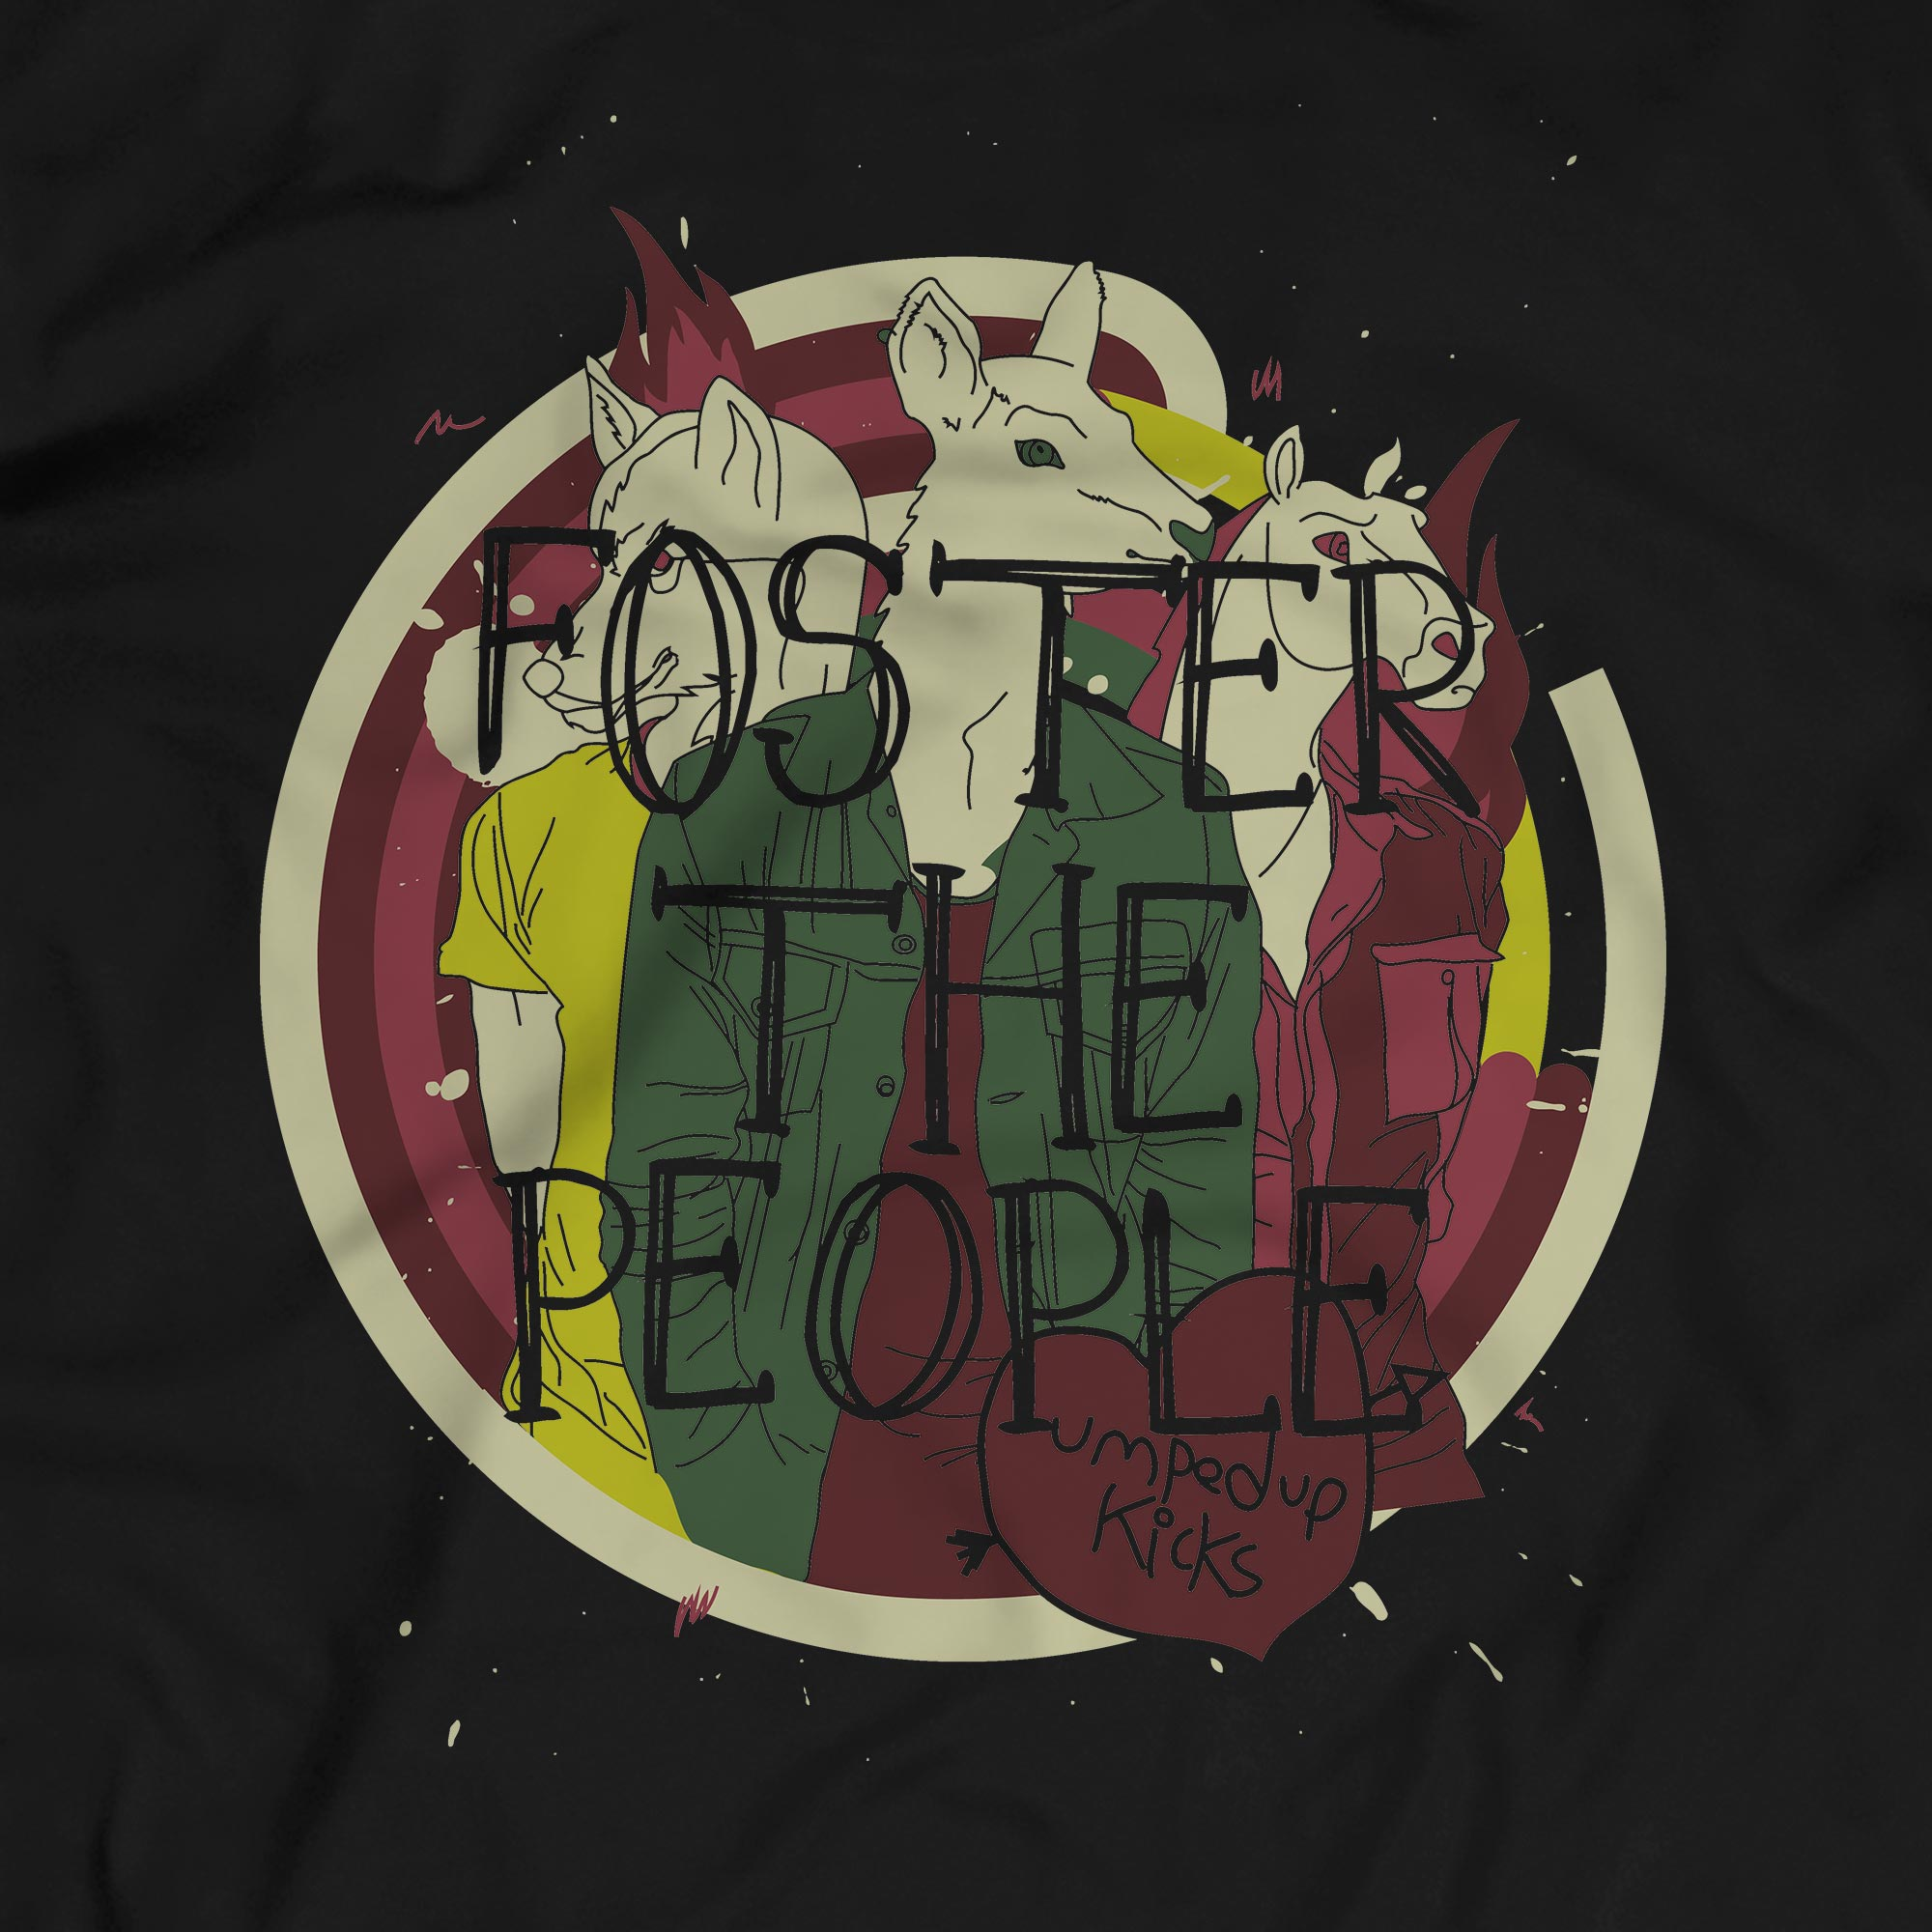 Camiseta Pumped Up Kicks - Foster The People - Masculino